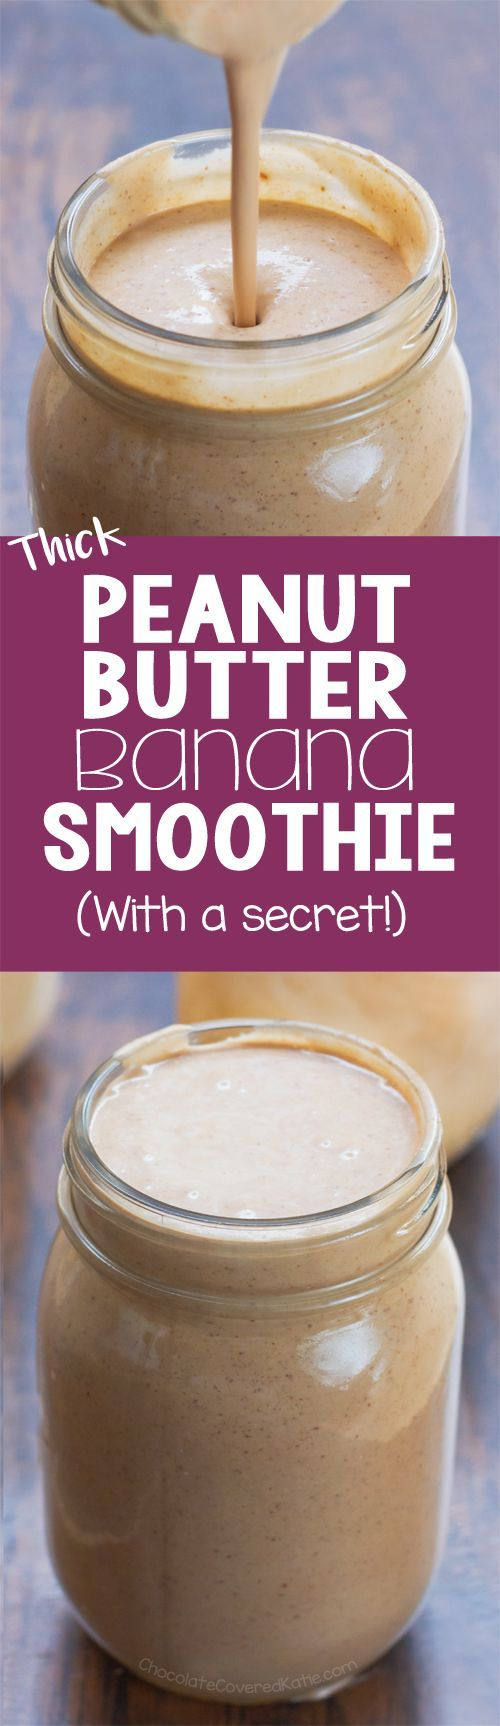 I make one of these smoothies every day for breakfast - it is the best peanut butter banana smoothie recipe, and healthy